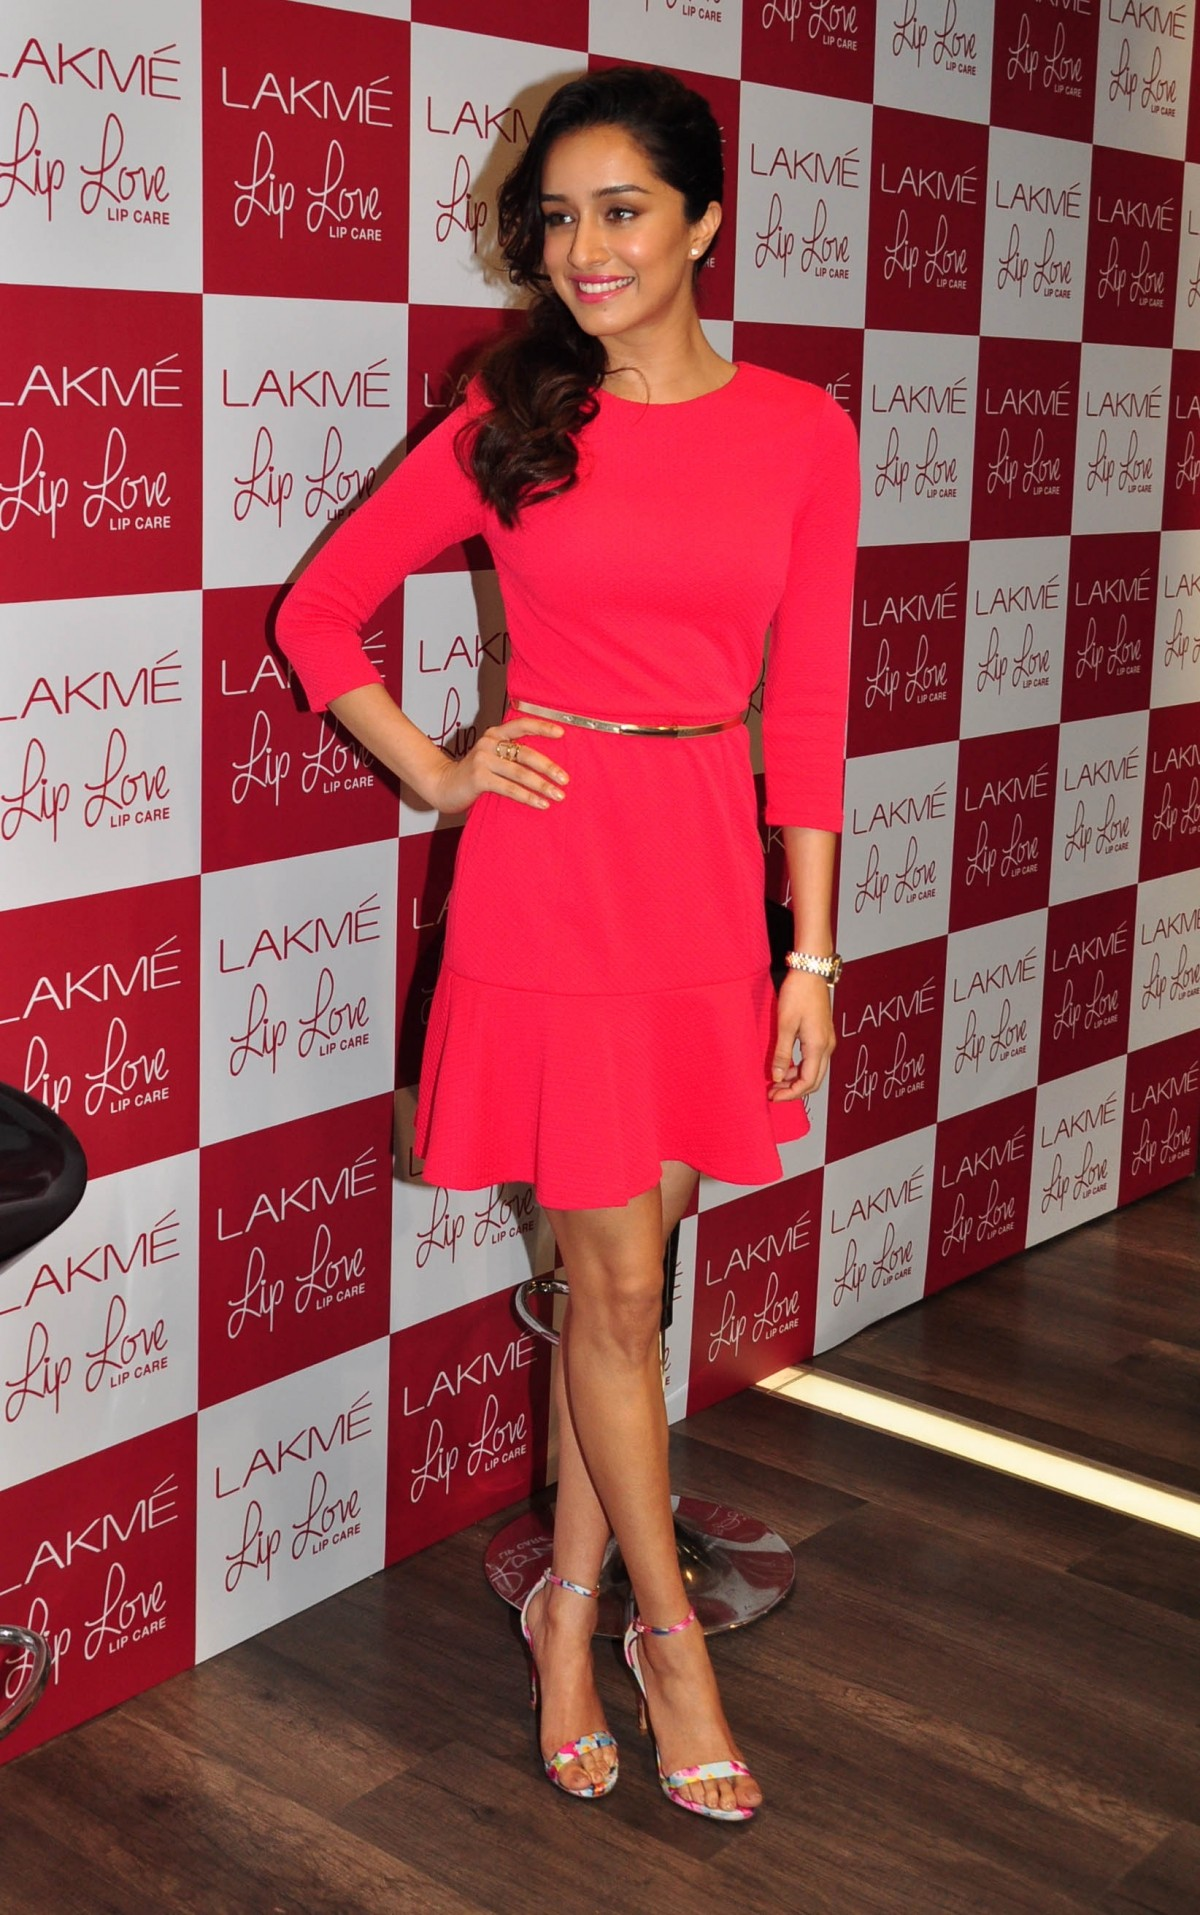 Shraddha Kapoor Charm Audience in Pink Dress at Lakme Event